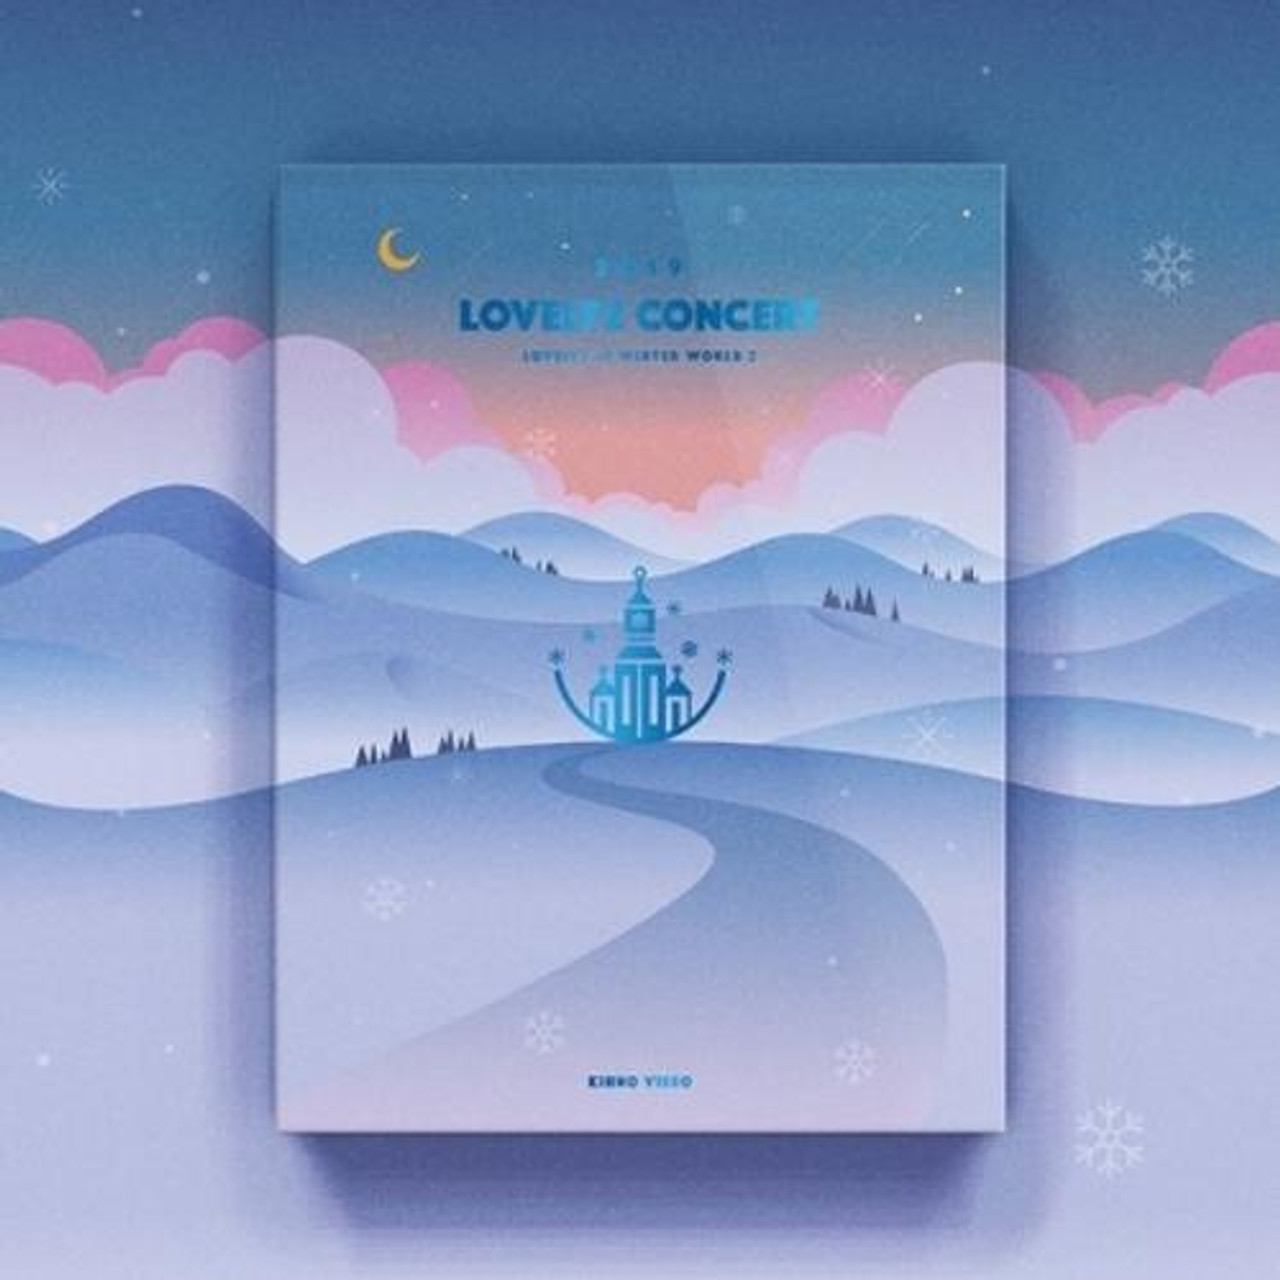 Lovelyz - 2019 LOVELYZ CONCERT [LOVELYZ IN WINTER WORLD 3] KIHNO VIDEO